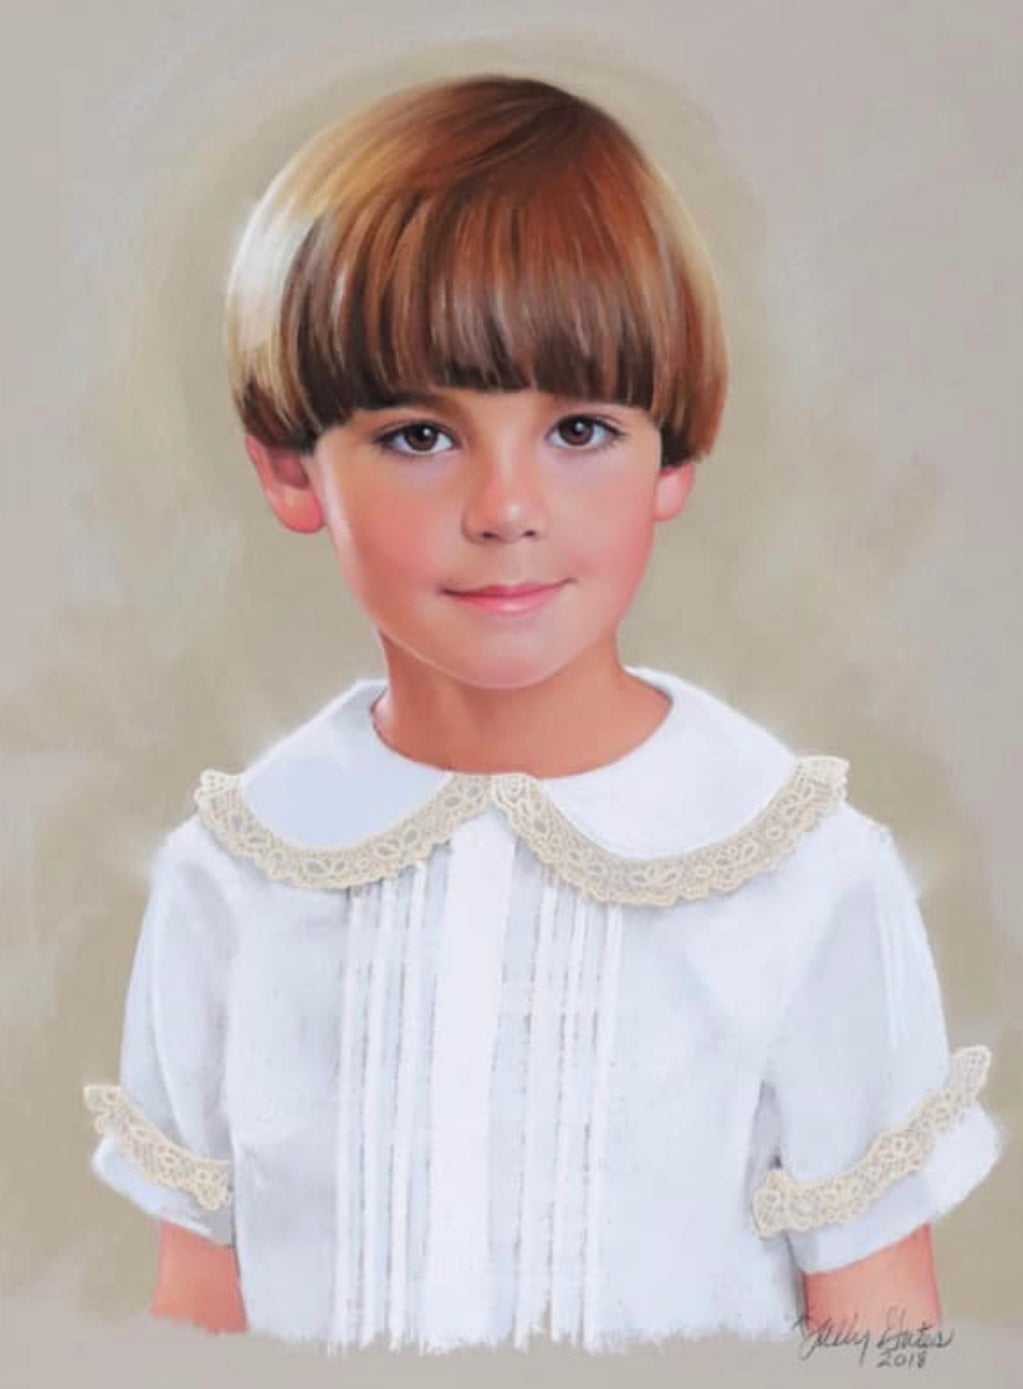 Pastel art child portrait in traditional clothing painted Sally Gates - Capturing the magic of childhood with Charlotte sy Dimby